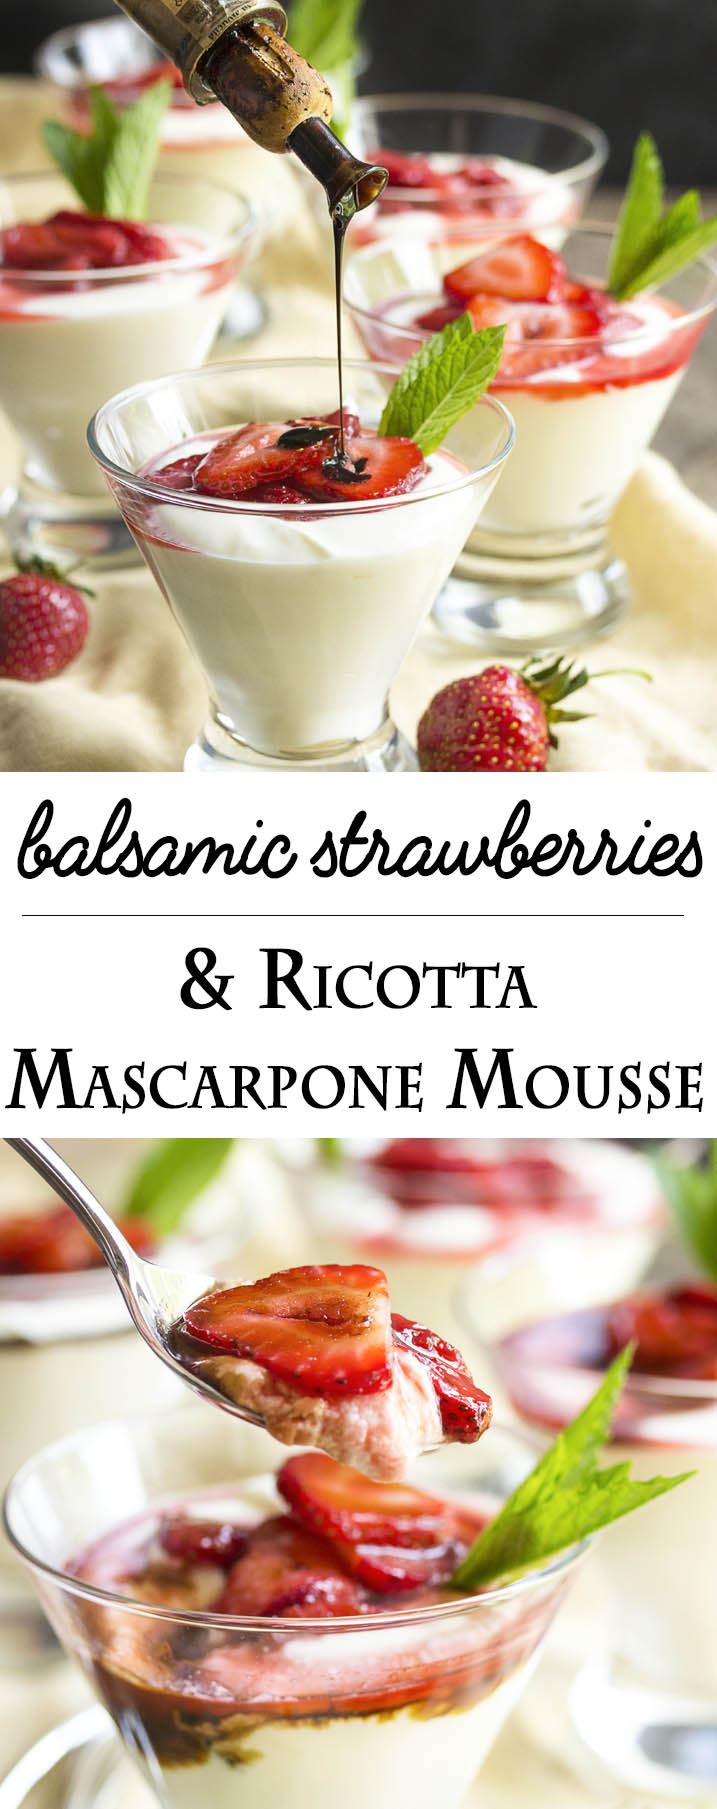 Balsamic Strawberry Mascarpone Mousse - Ricotta and mascarpone are whipped together in a light and flavorful mousse which is topped by balsamic strawberries in this yummy Italian style no bake dessert. | justalittlebitofbacon.com